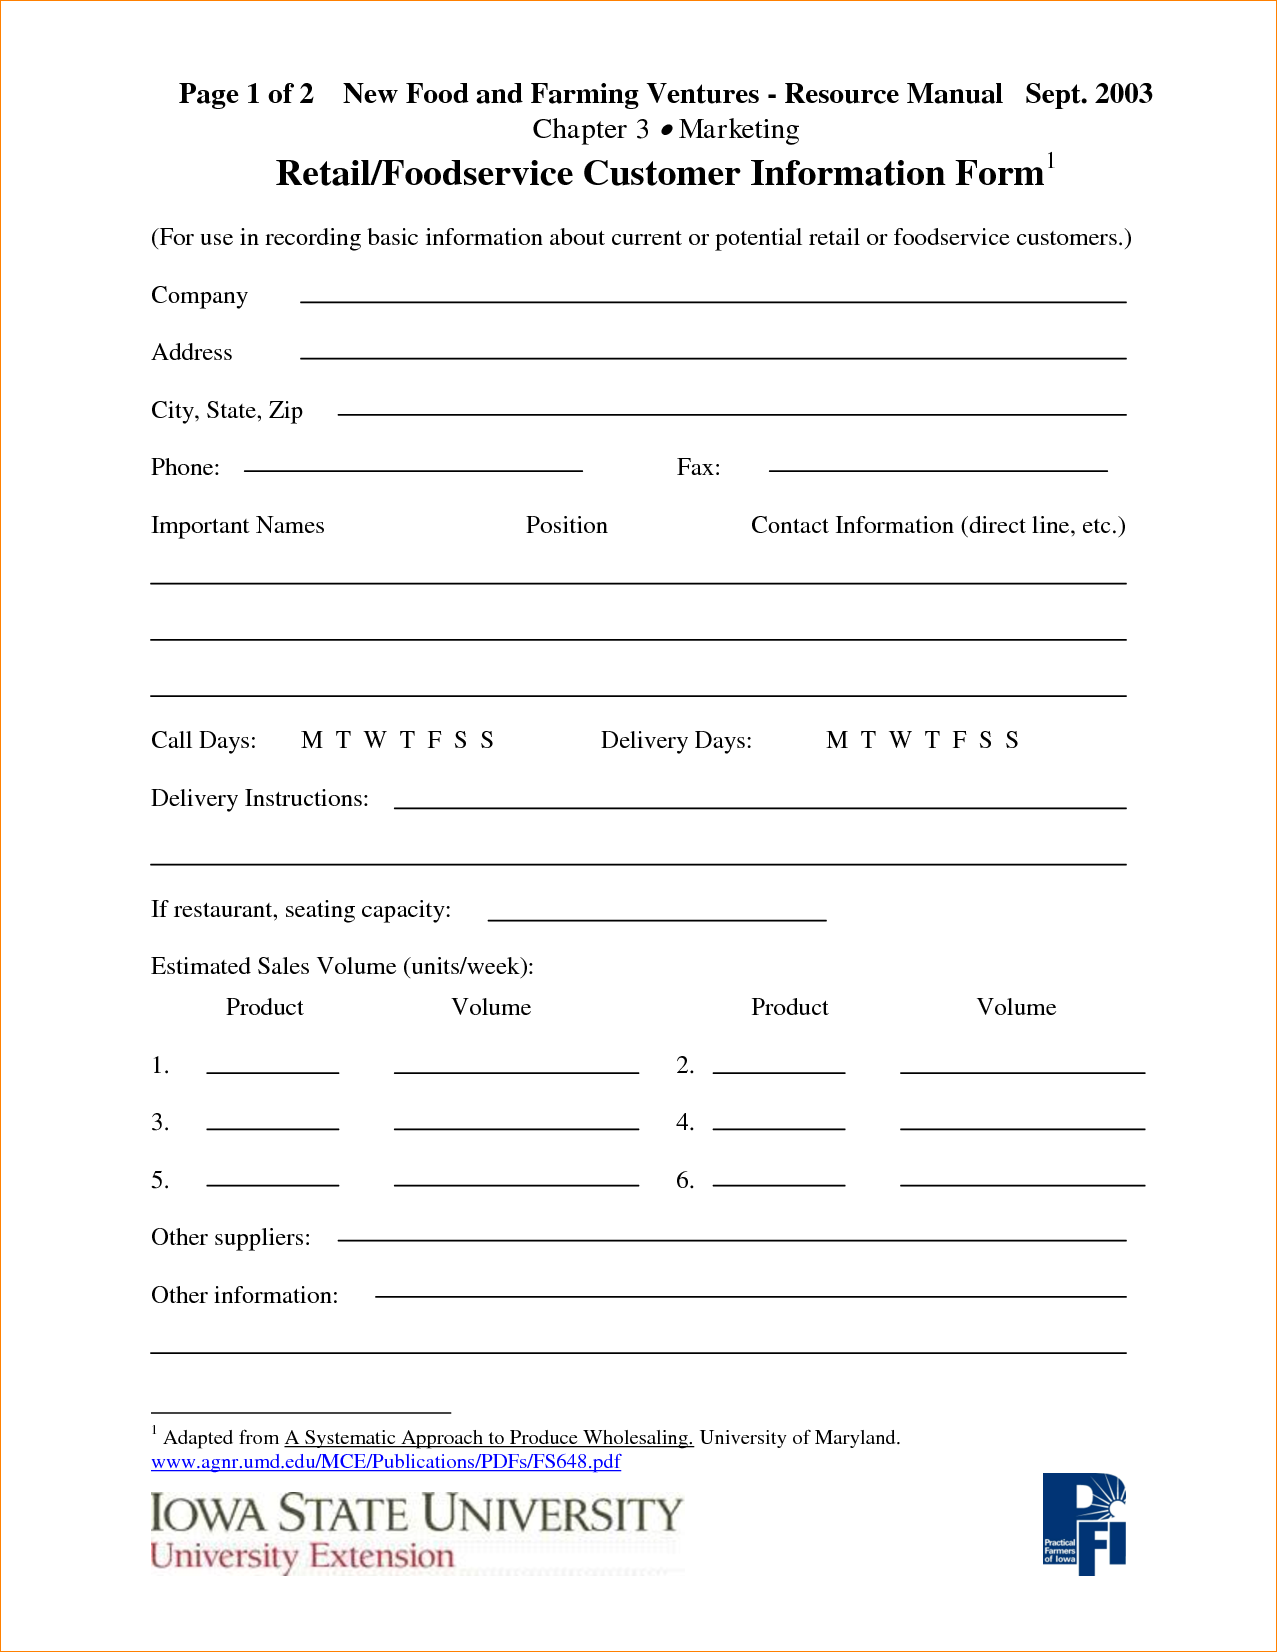 Customer information form template charlotte clergy for Update contact information form template